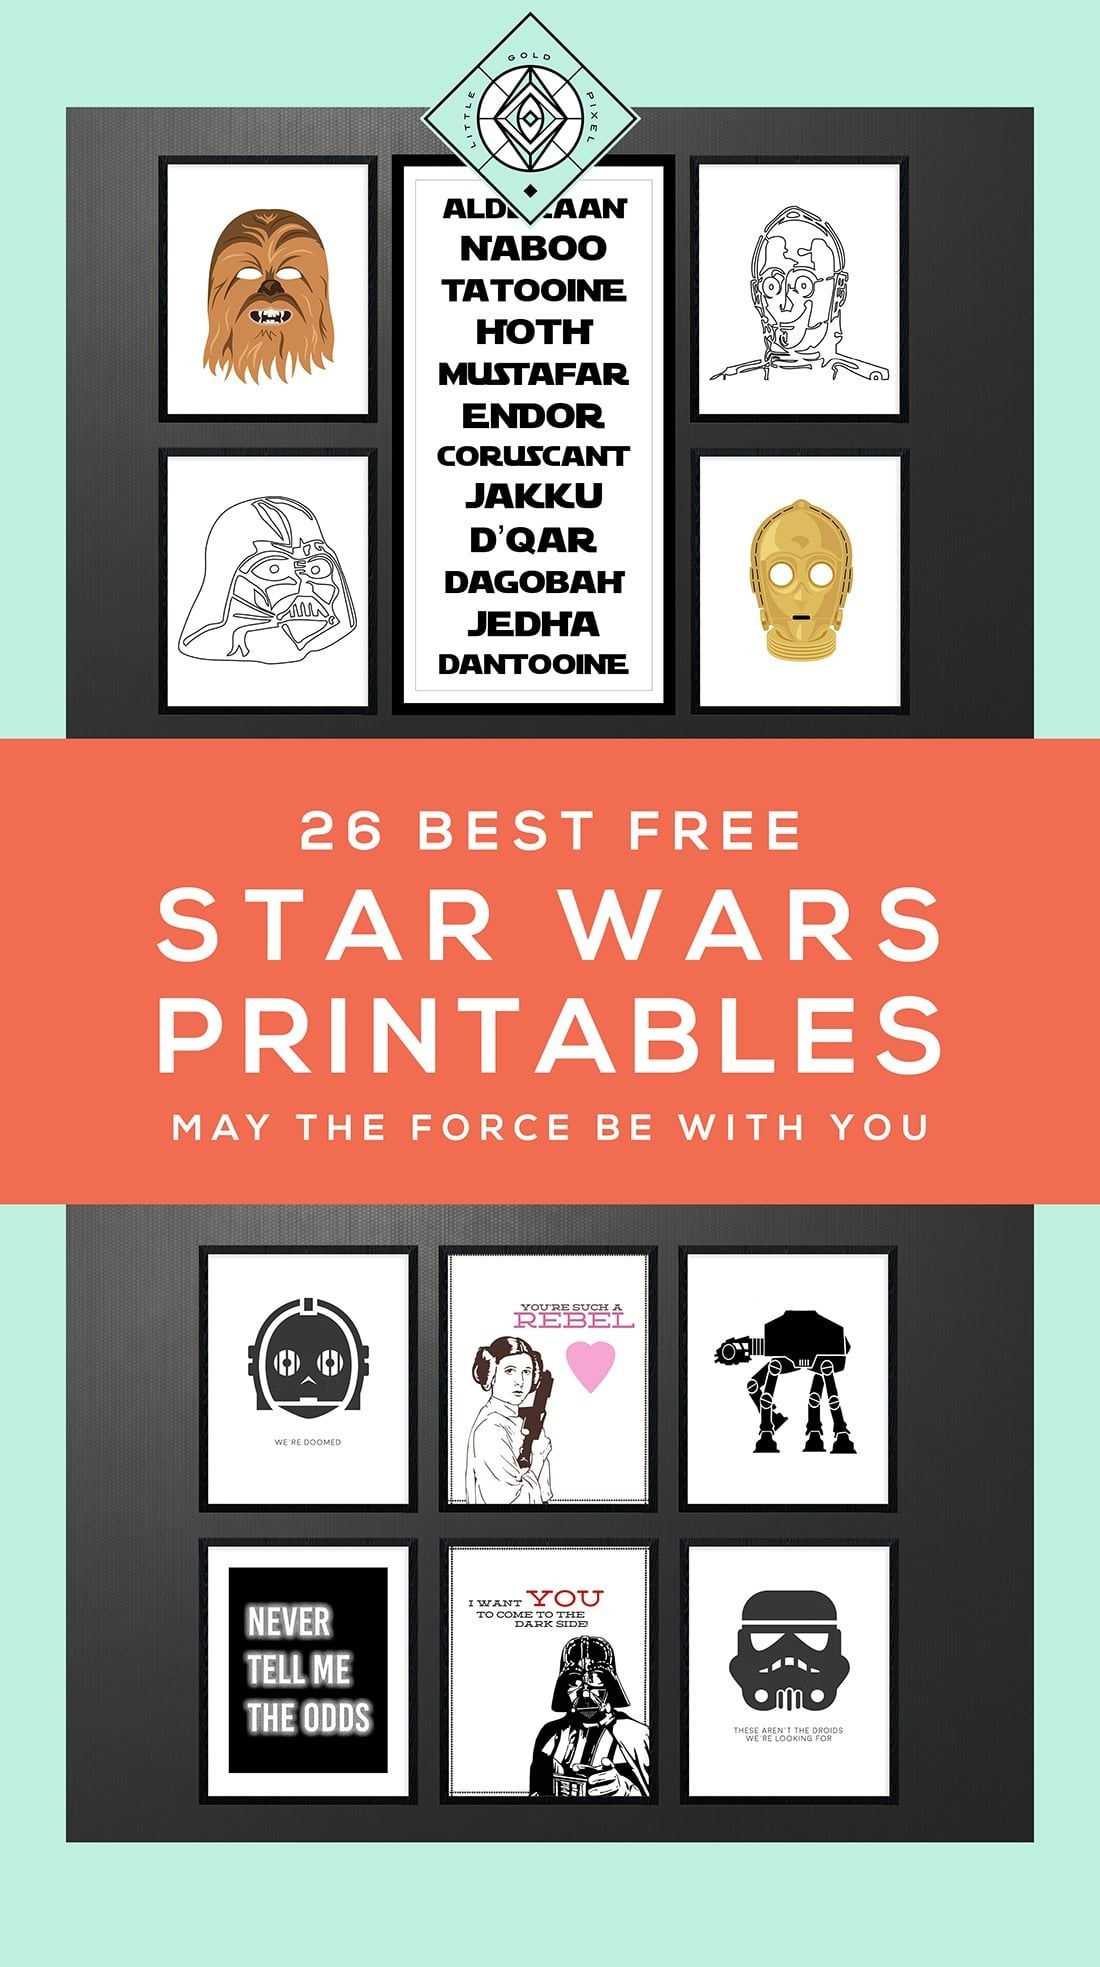 Star Wars Free Printables • A Roundup | Free Printables • Roundups - May The Force Be With You Free Printable